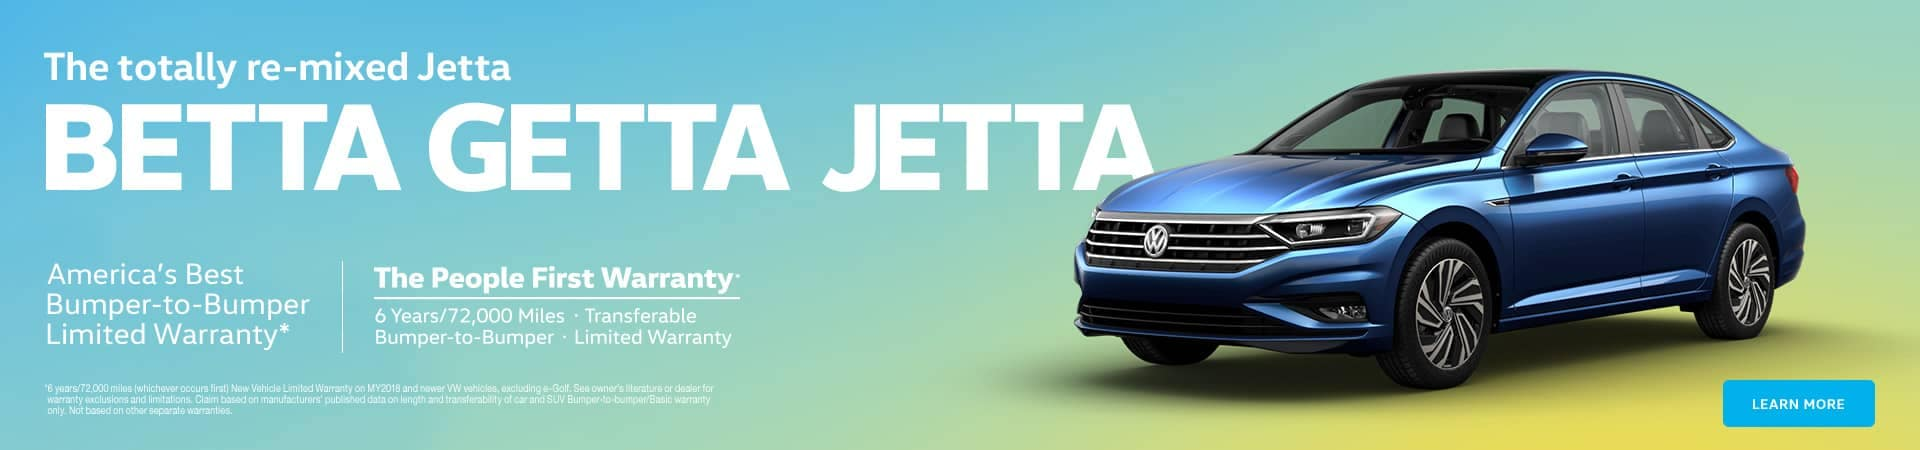 Betta Getta Jetta